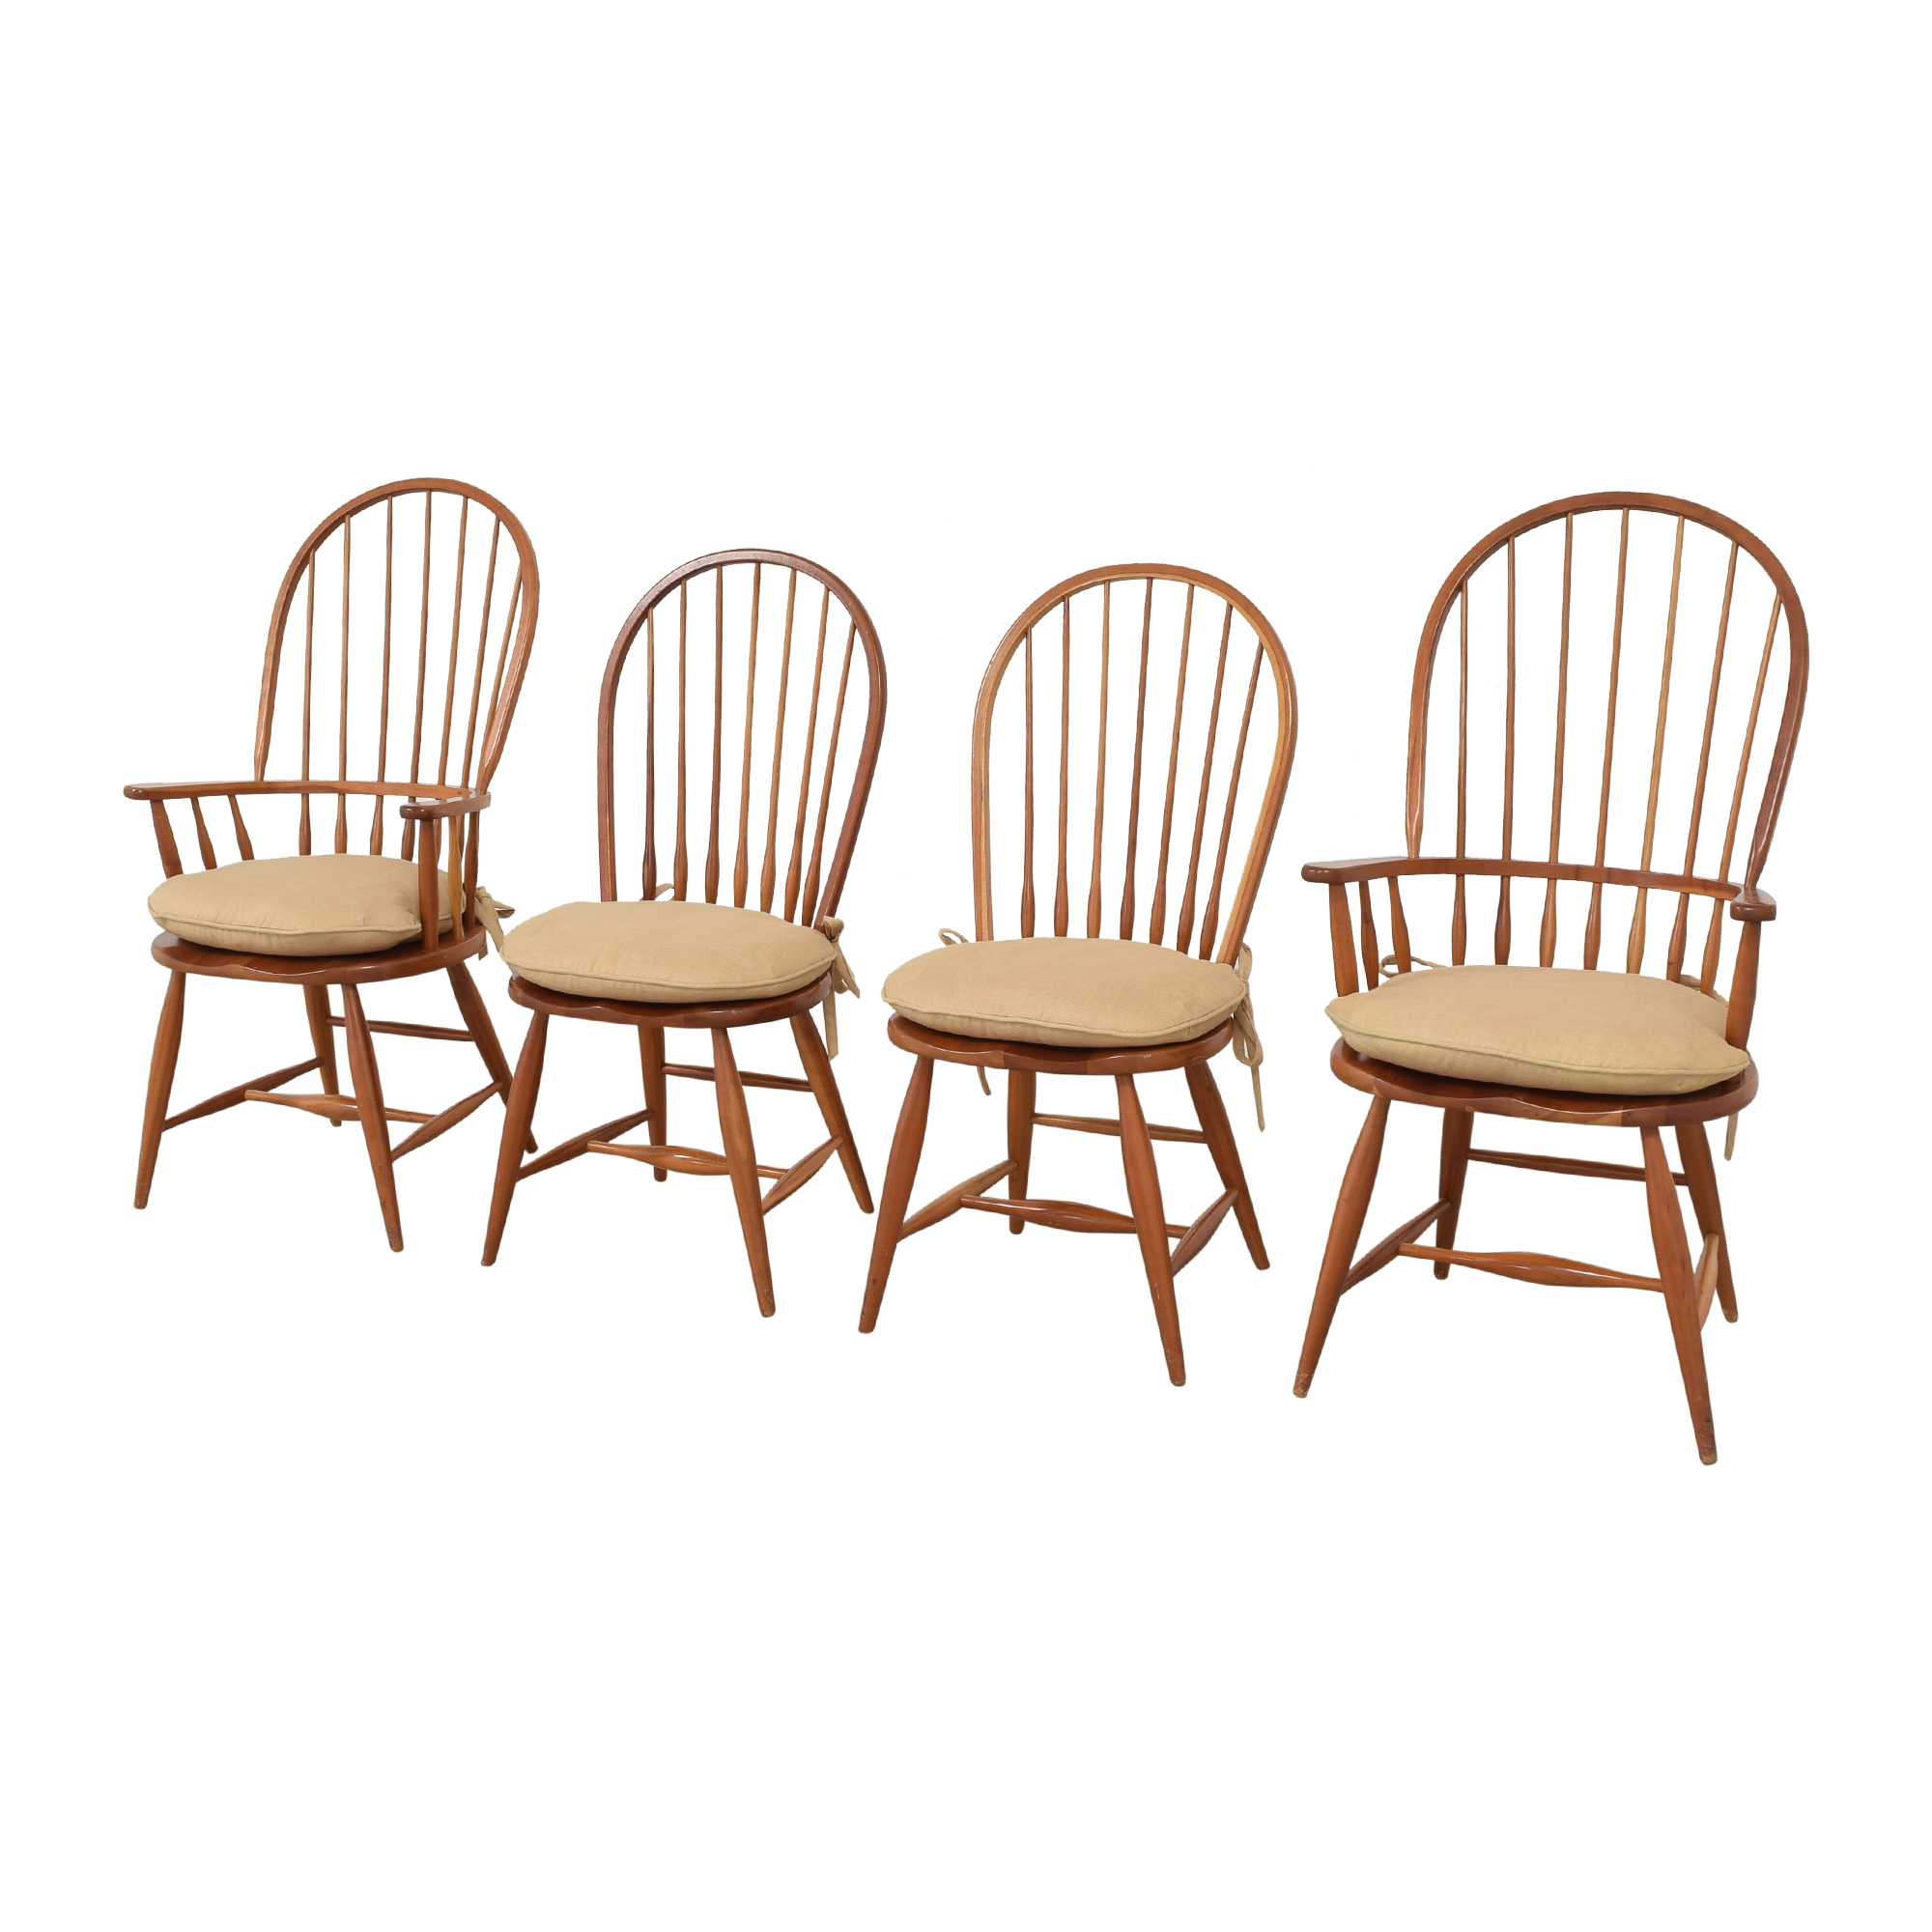 Asher Benjamin Studio Asher Benjamin Studio Windsor Back Dining Room Chairs price